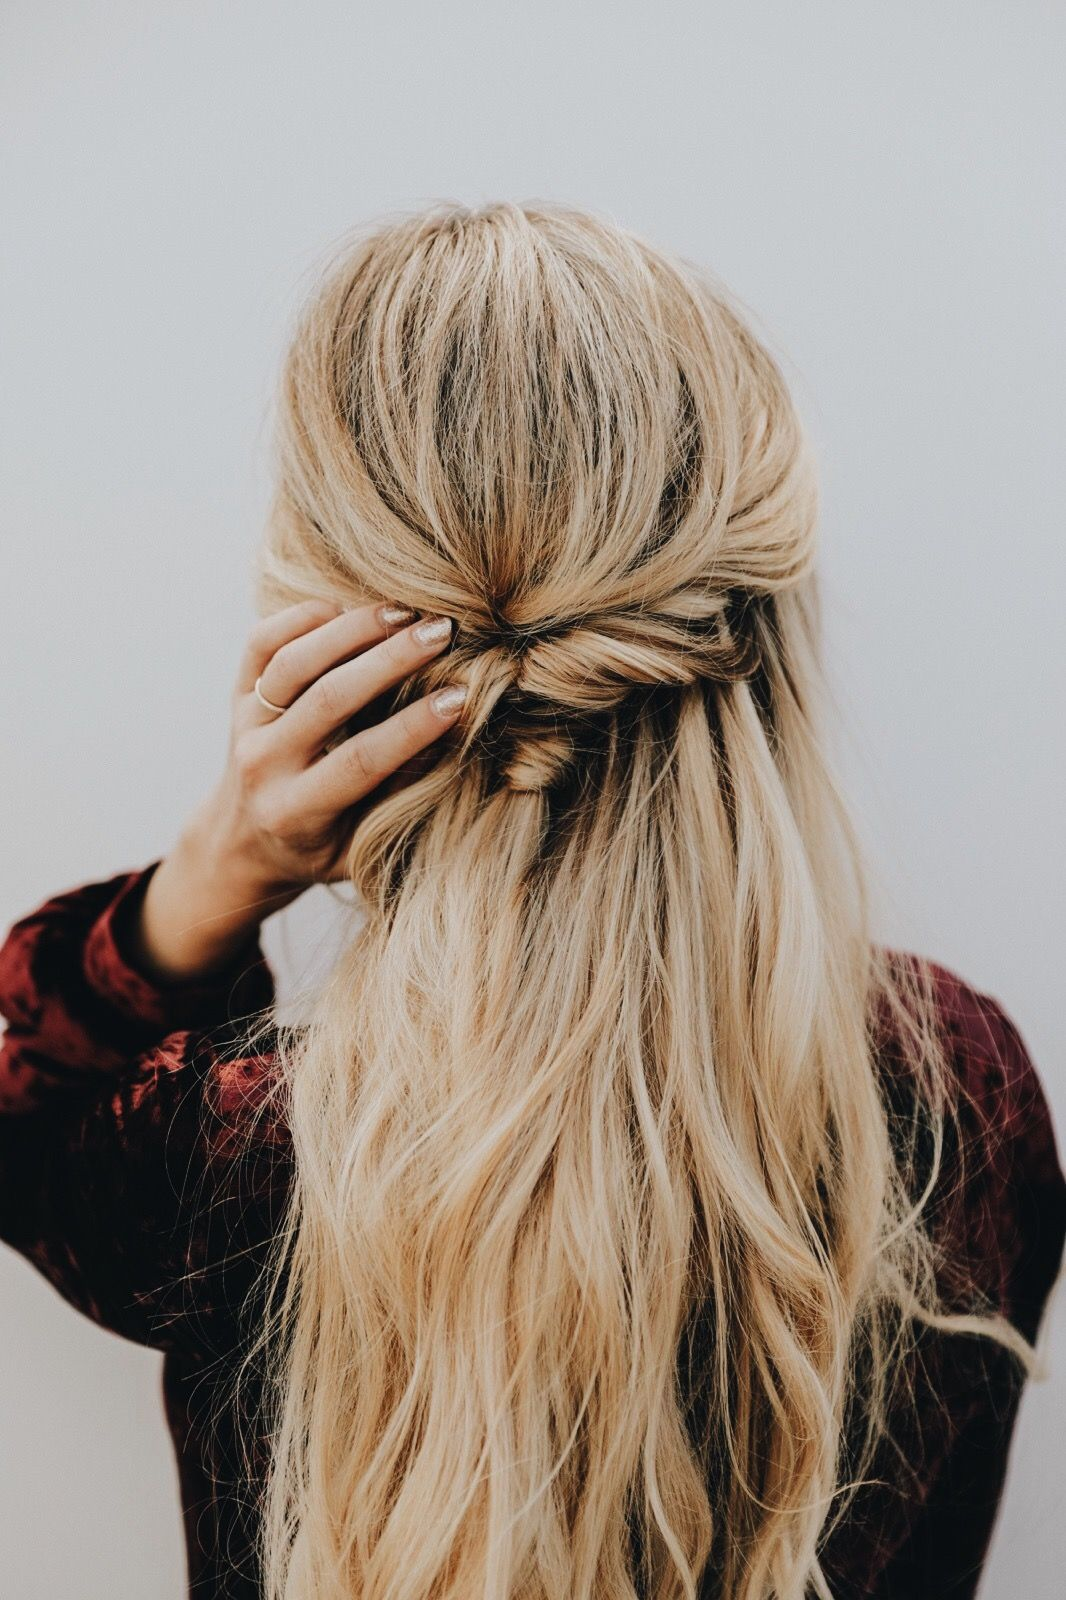 Beauty beautyinthebag hair pinterest hair affair blonde